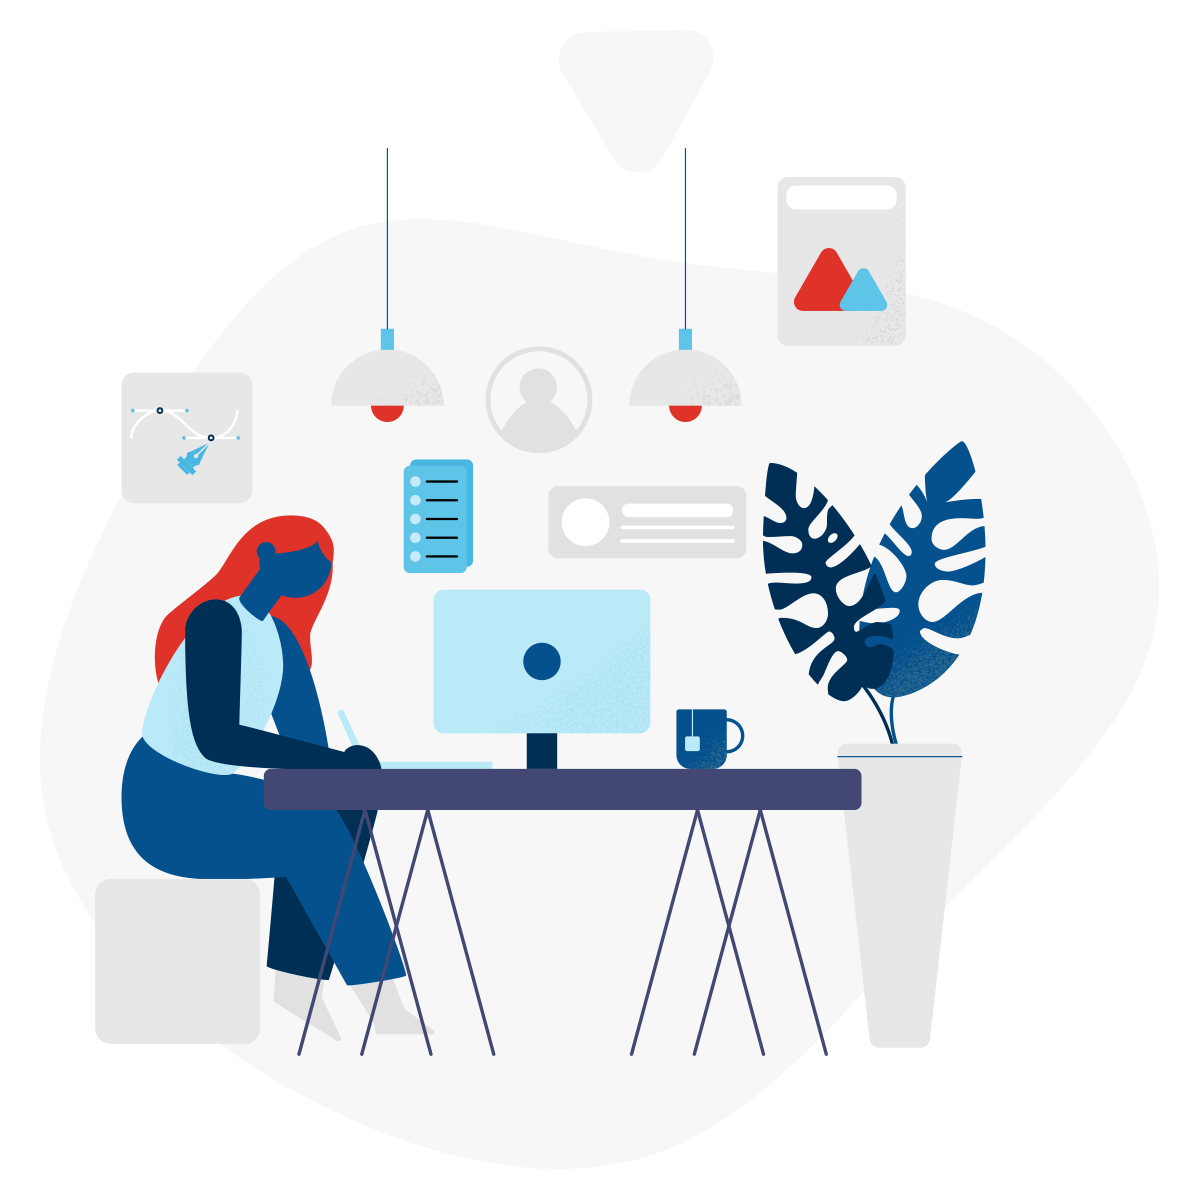 Coles Design Systems Illustrations